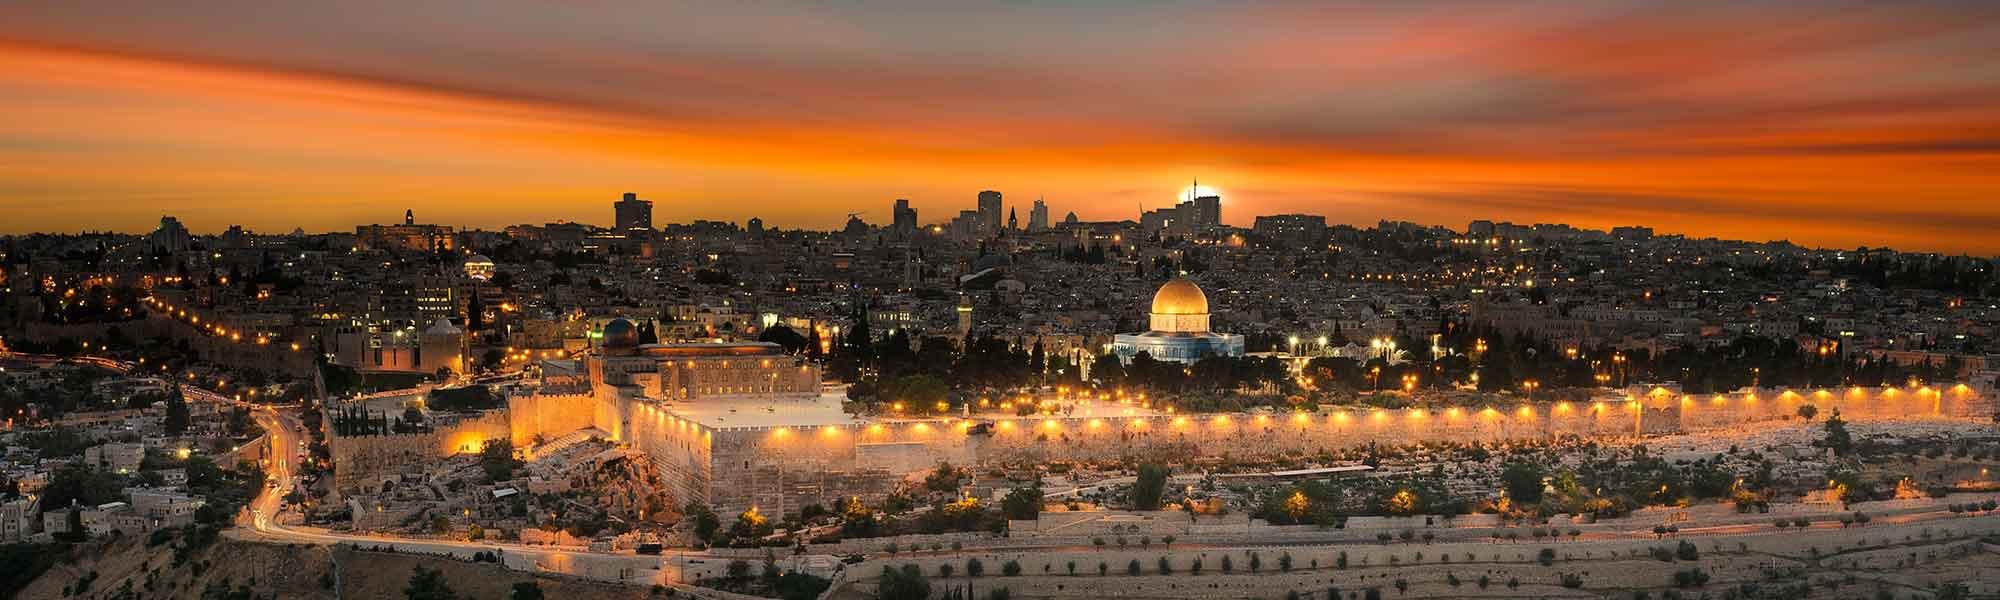 View to Jerusalem old city at sunset - Israel